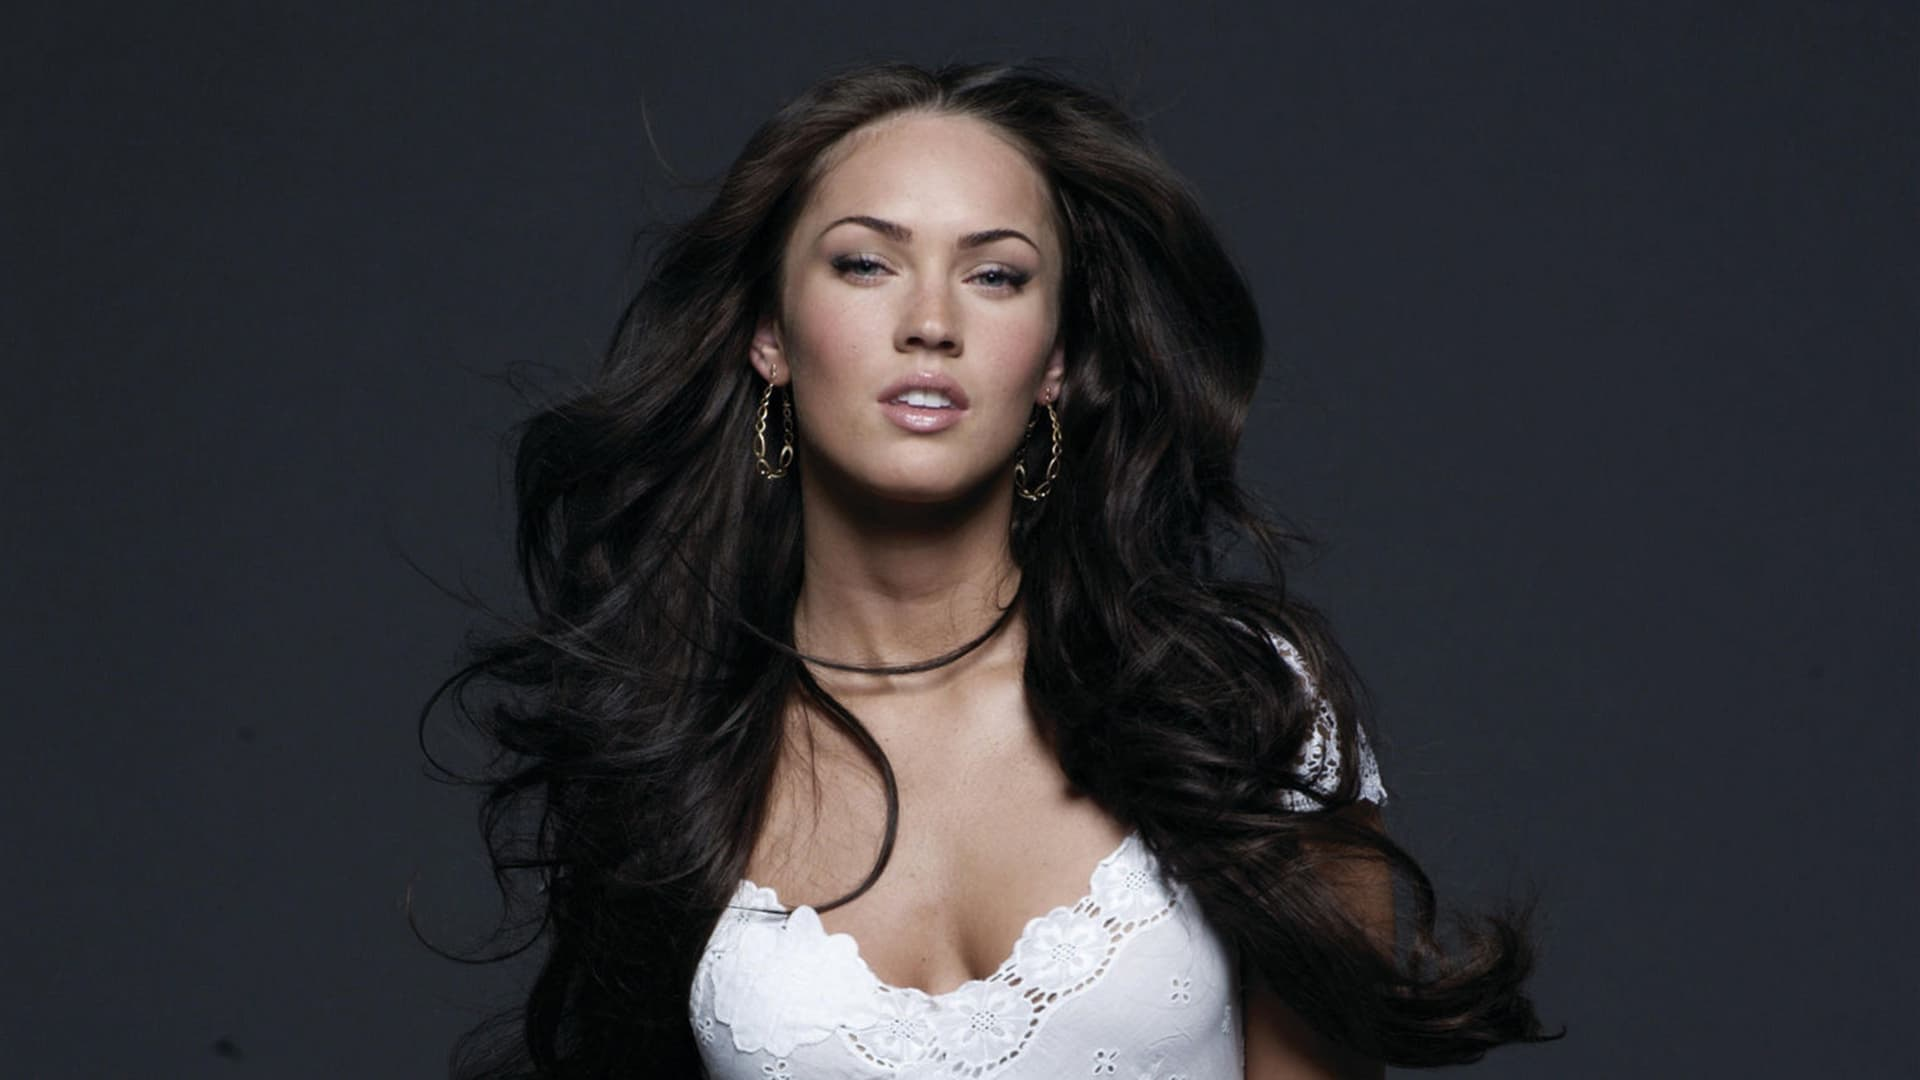 Wallpapers Of Cool Girls 40 Megan Fox Wallpapers High Quality Download